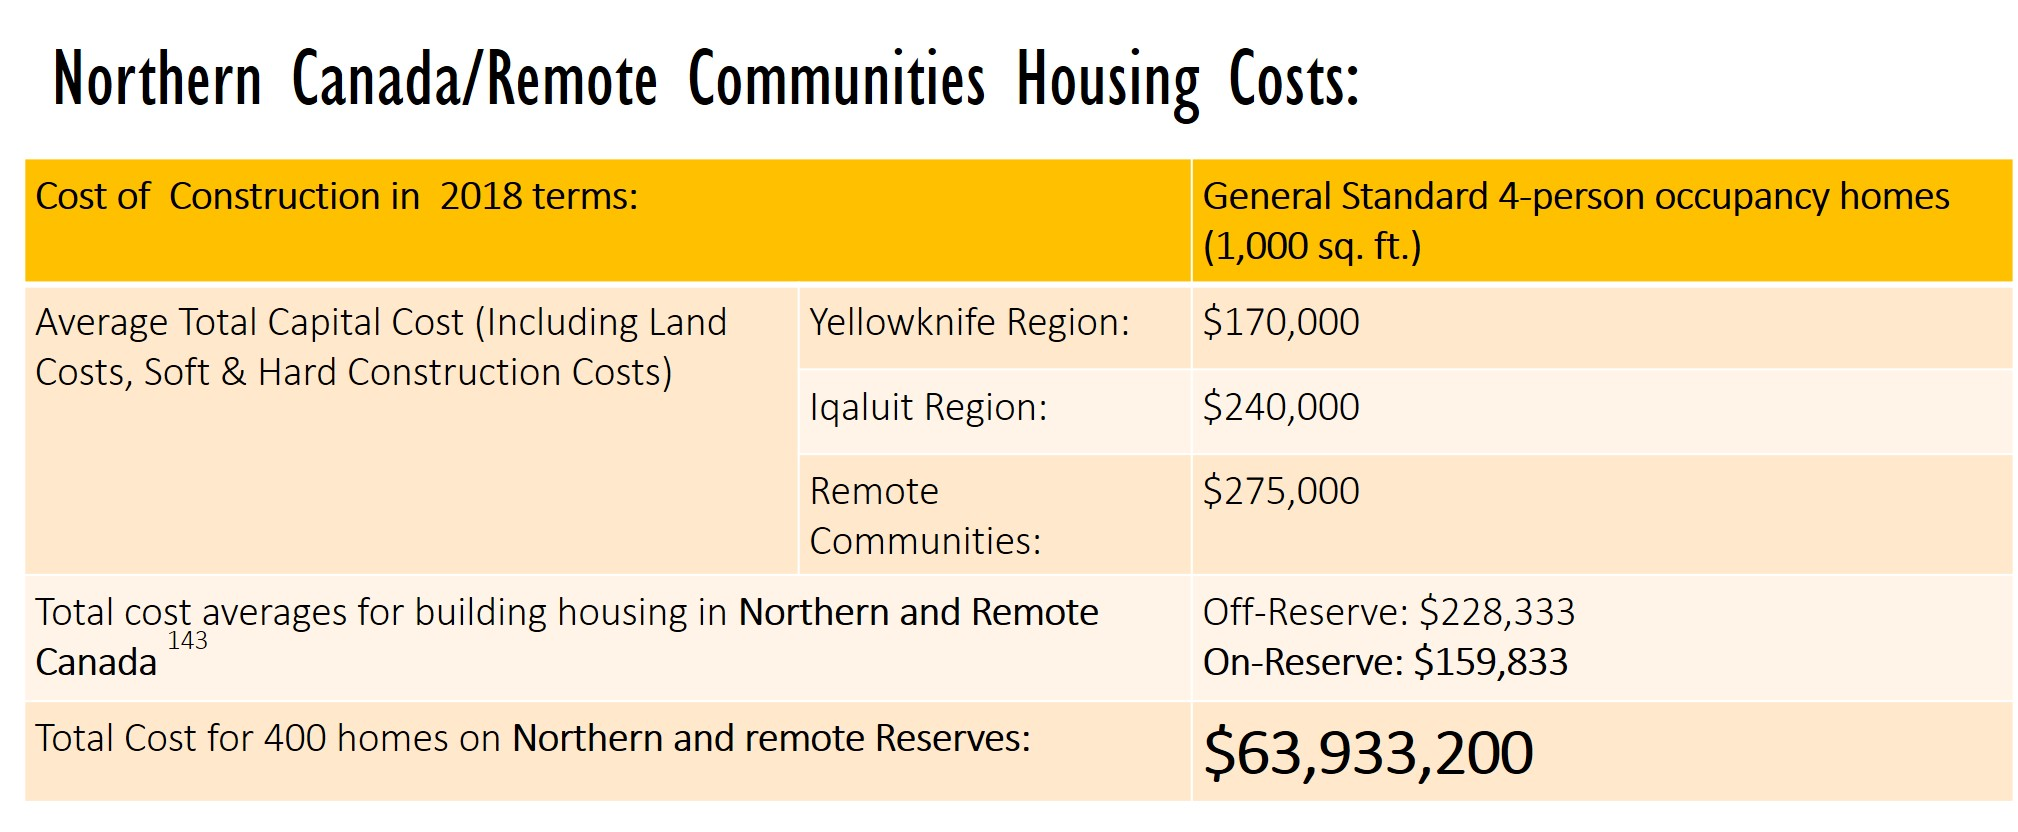 Northern Canada/Remote Communities Housing Costs:Total Cost for 400 homes on Northern and remote Reserves $63,933,200